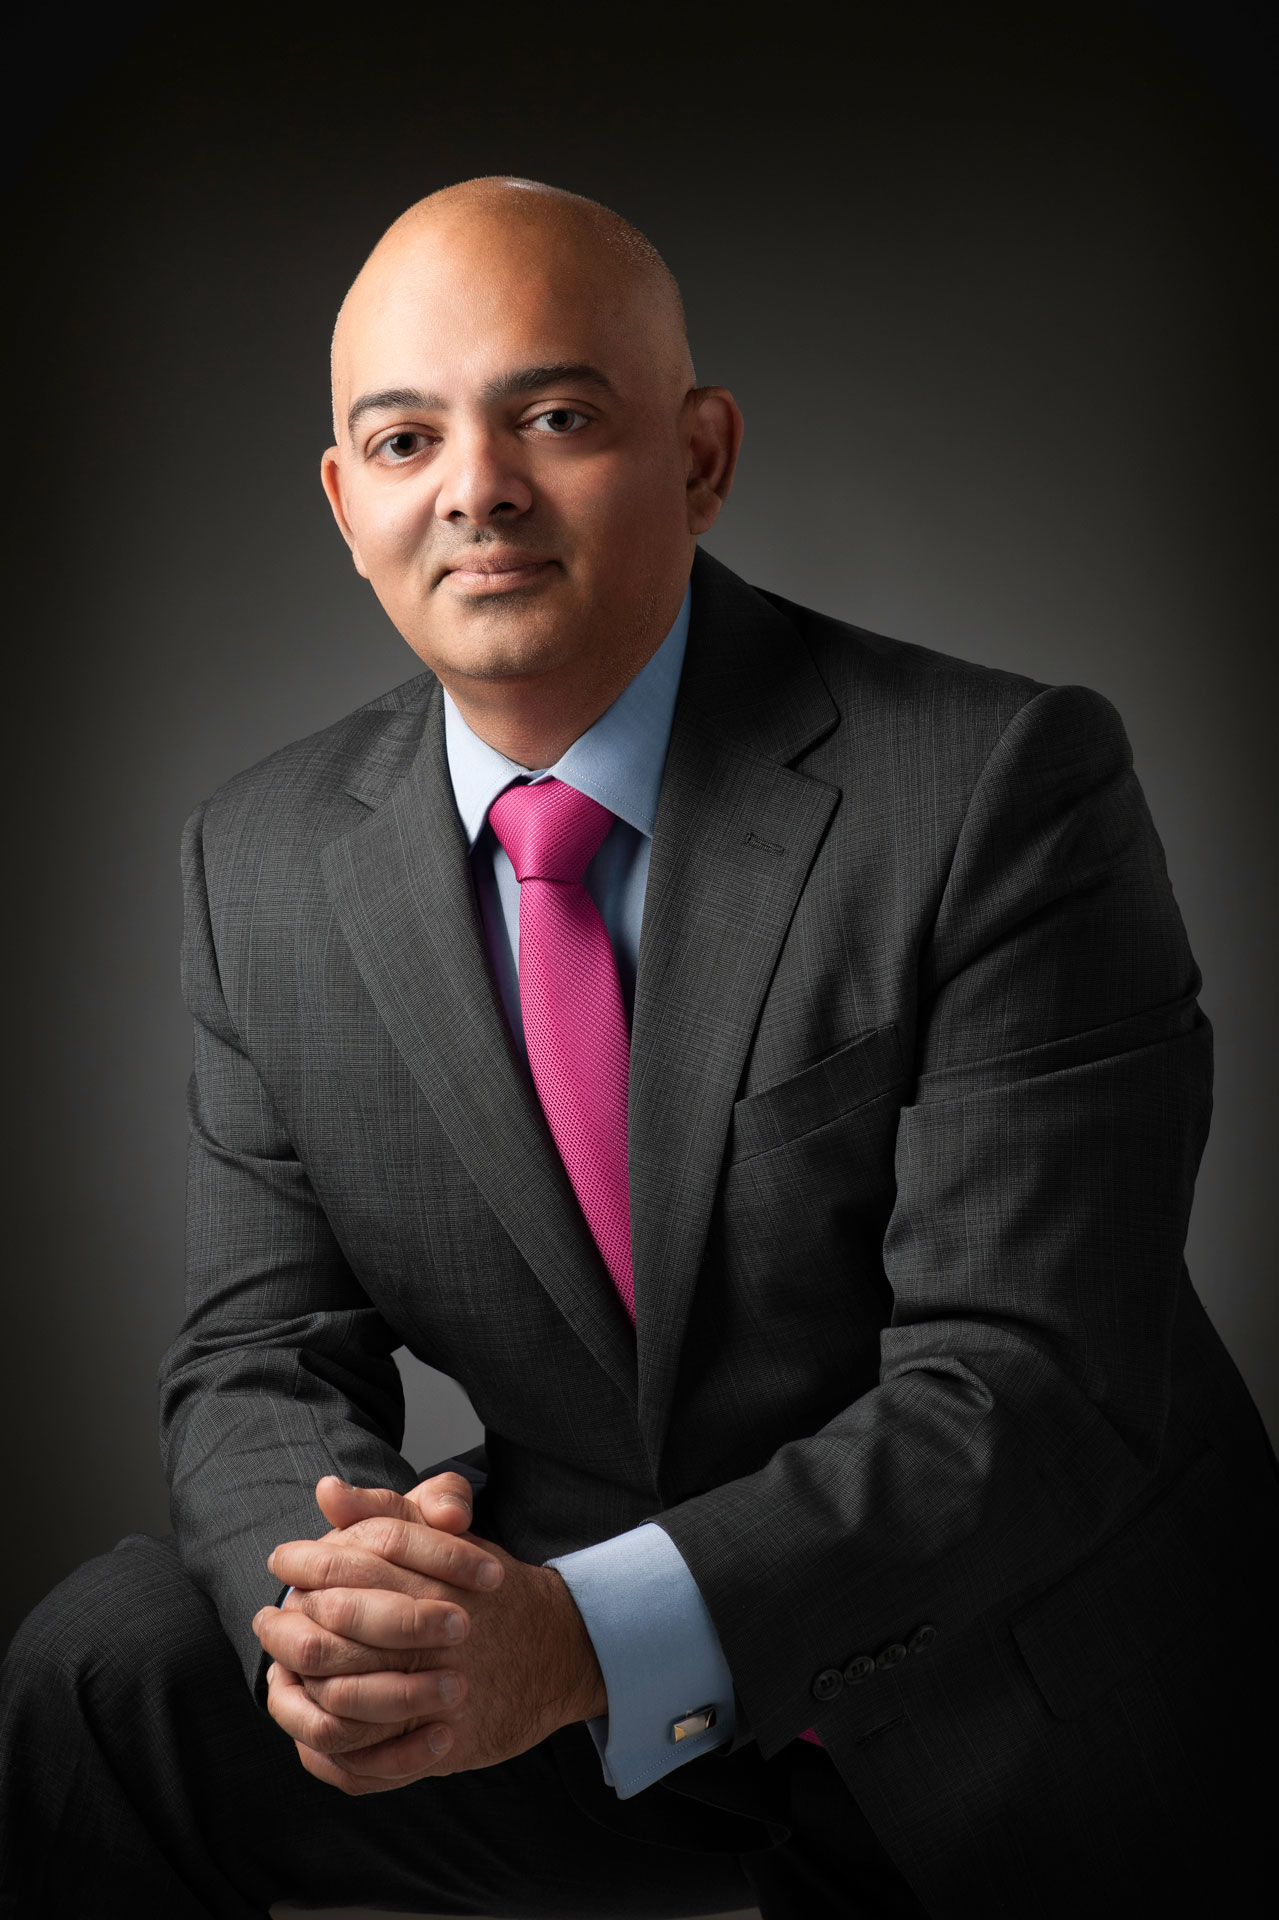 Corporate portrait Photography by Asif Raza